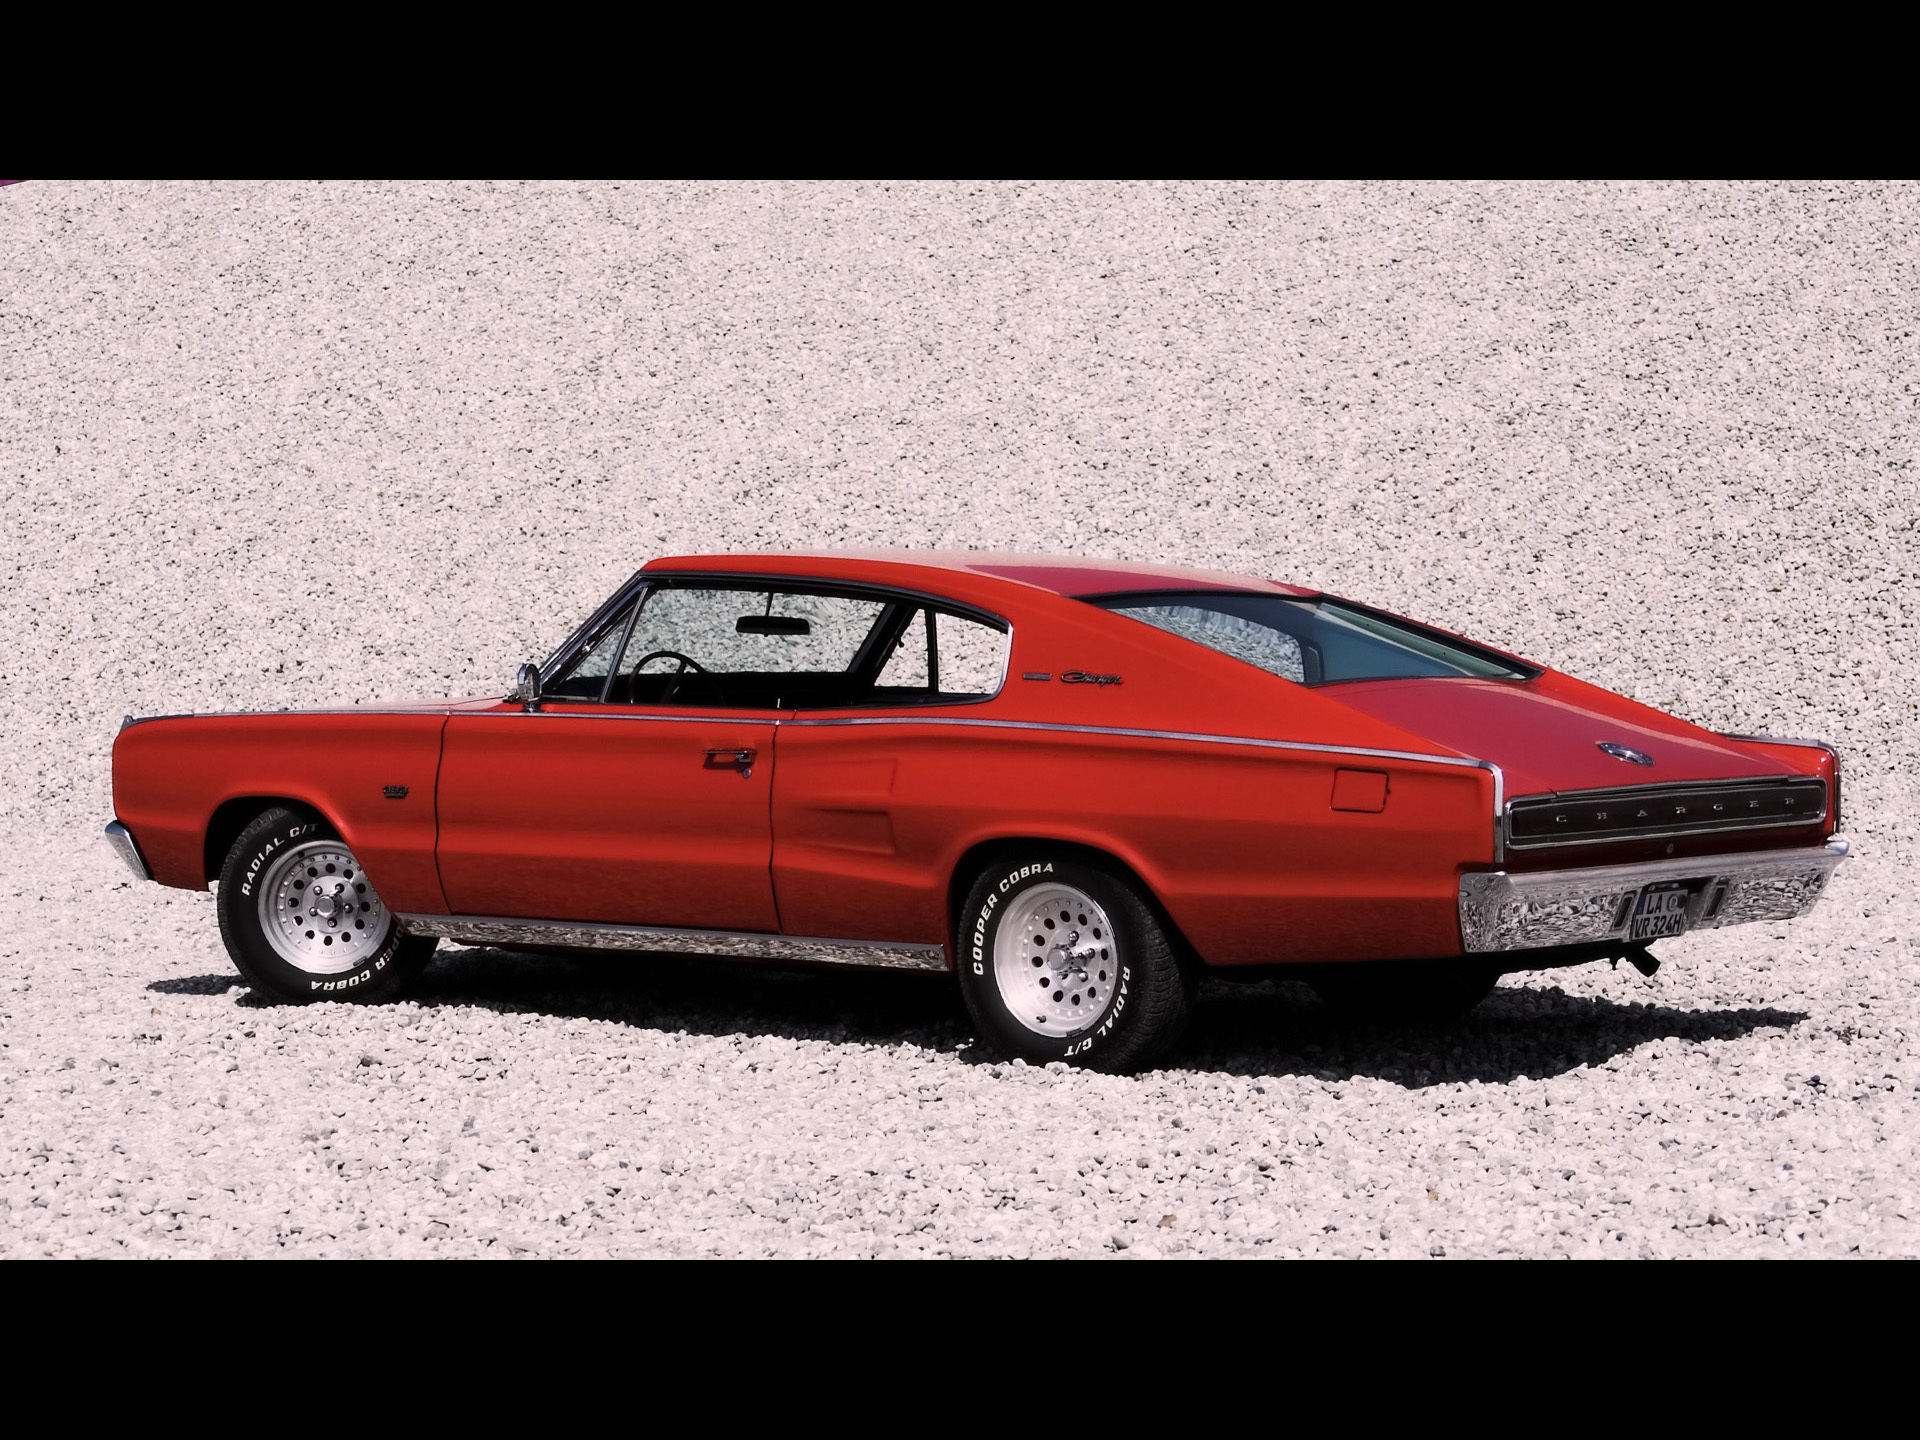 1967 Dodge Charger of HD Wallpaper